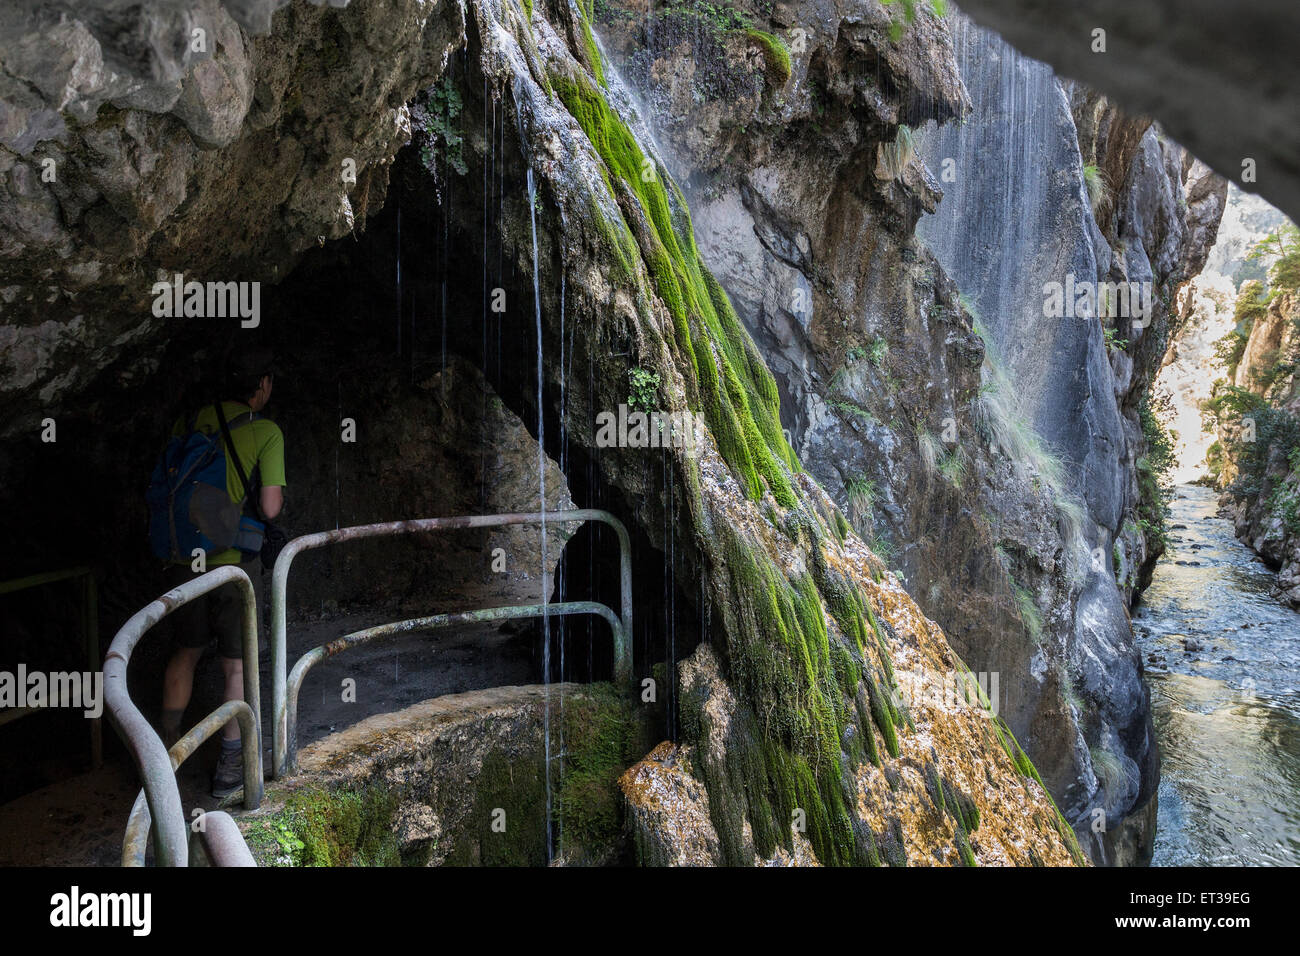 Walker Passing Underneath a Waterfall in the Cares Gorge Picos De Europa Cordillera Cantabria Spain - Stock Image